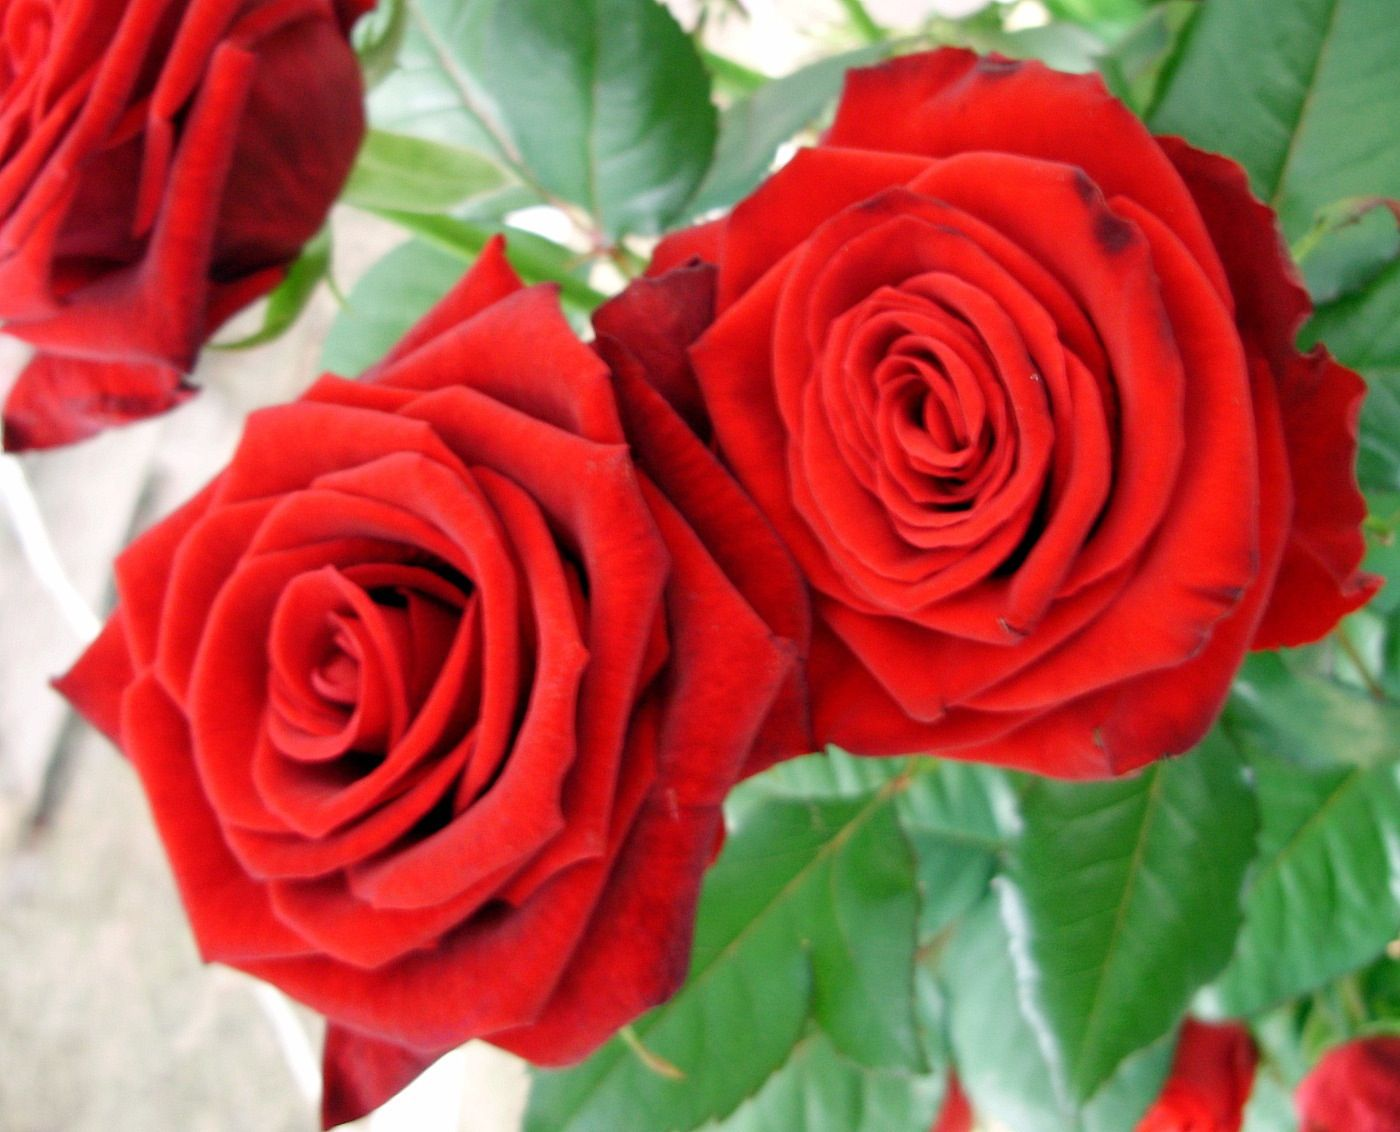 I love flowers Red rose pictures, Red roses, Flowers